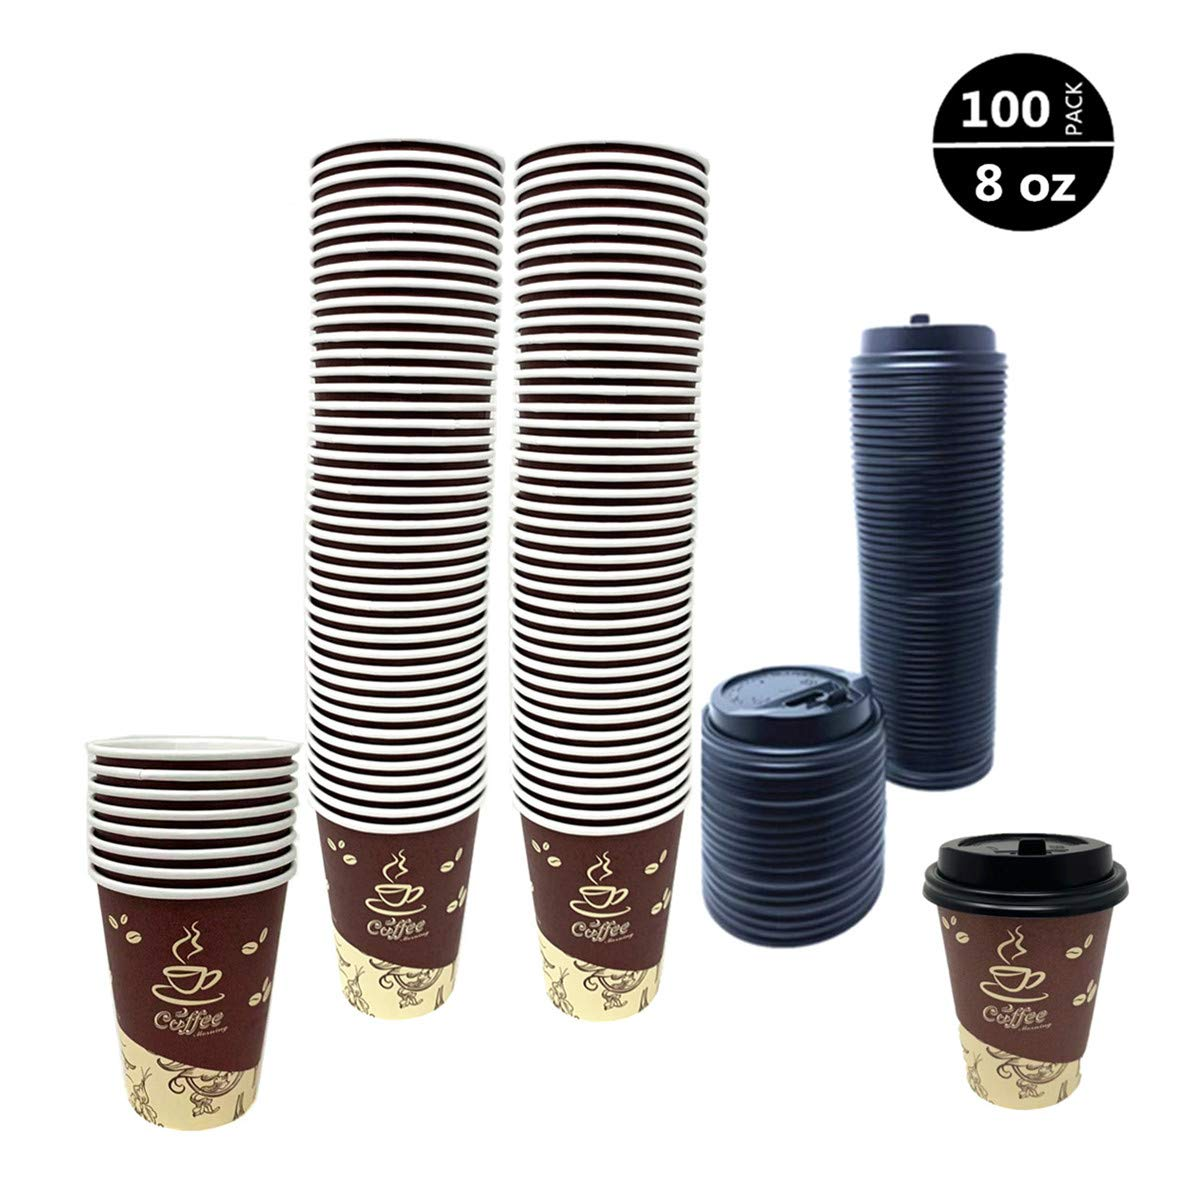 100 Pack Quality Disposable Paper Hot Coffee Cups with Lids, Perfect For Hot Drinks Tea & Coffee, Coffee Shops And Bars,Coffee Bean & Flower design (8 oz) by Tsyware